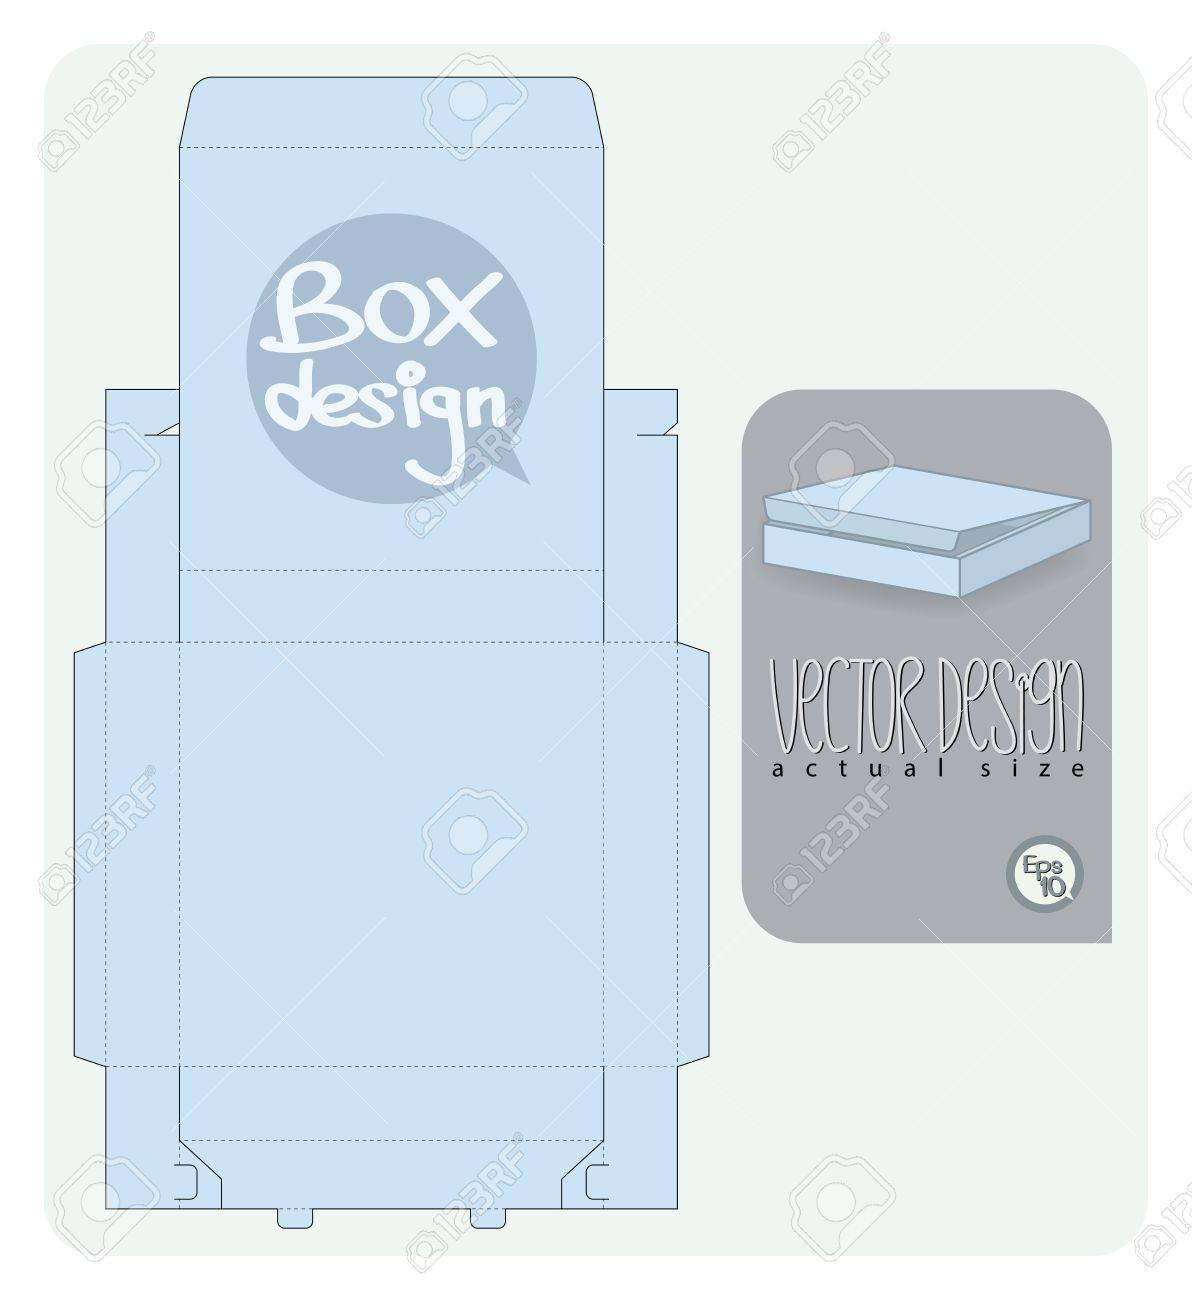 Vector Gift Box paper die cut actual size - 21994953